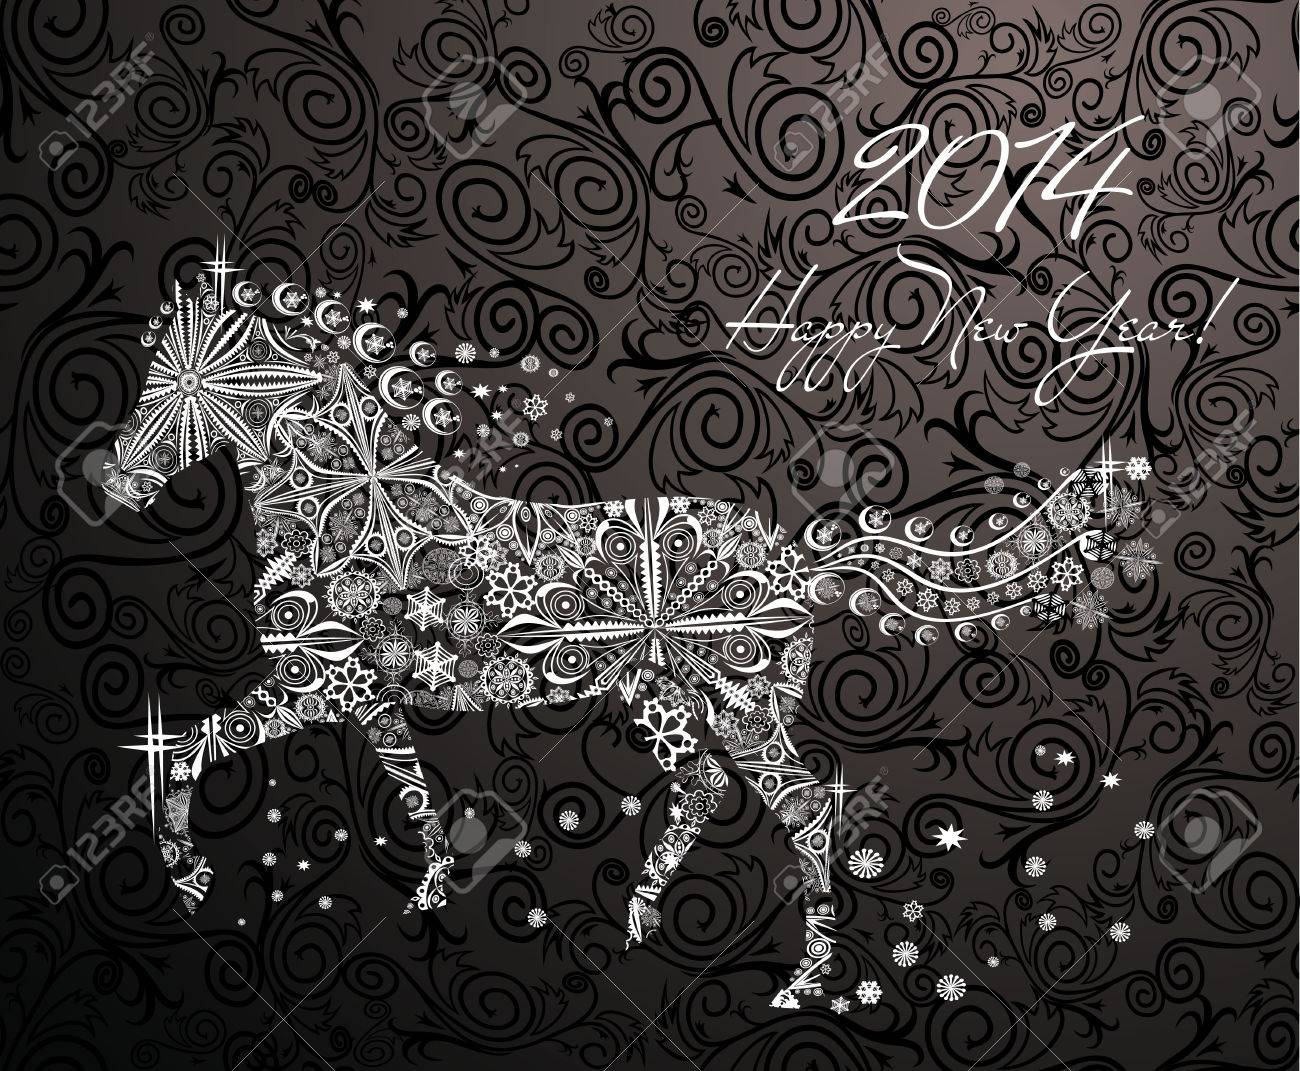 Year of horse  Happy new year 2014 Stock Vector - 23892913